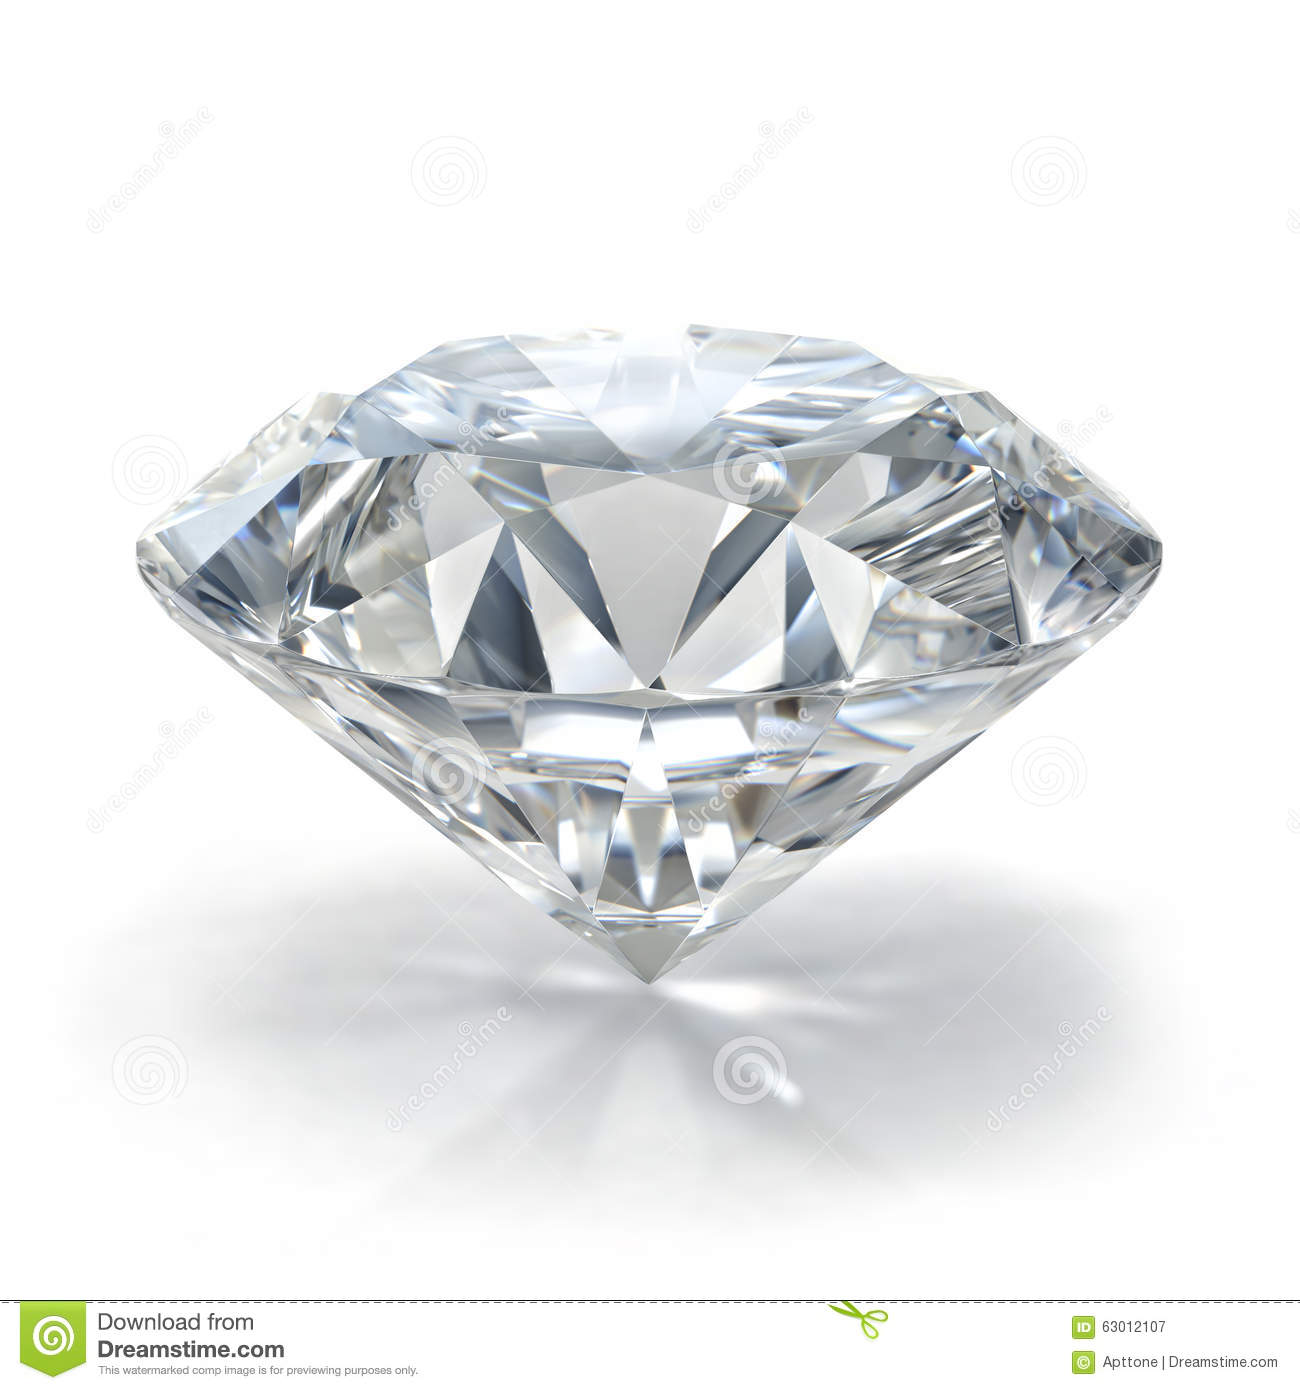 ultra art resolution diamond background pc white mobile hd photos high wallpaper quality of dimond backgrounds